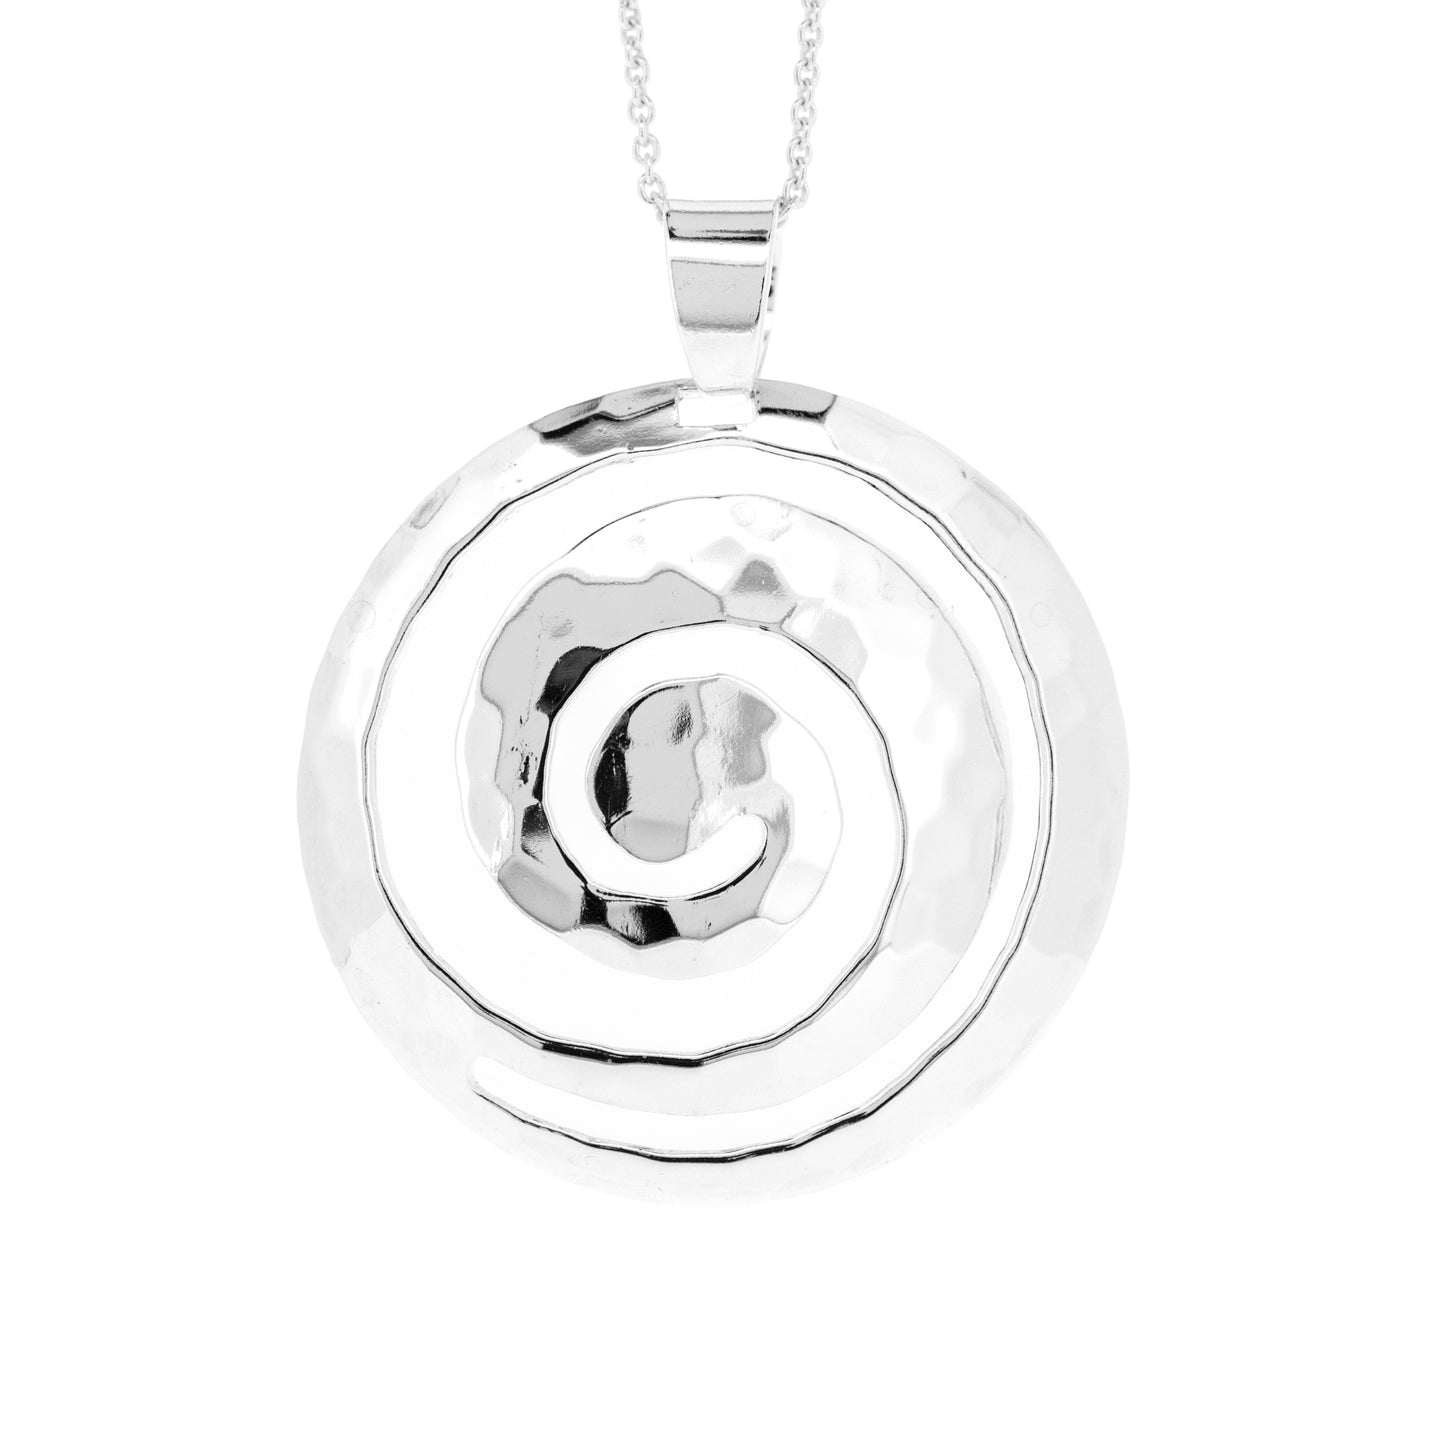 Silver Swirl Pendant Necklace